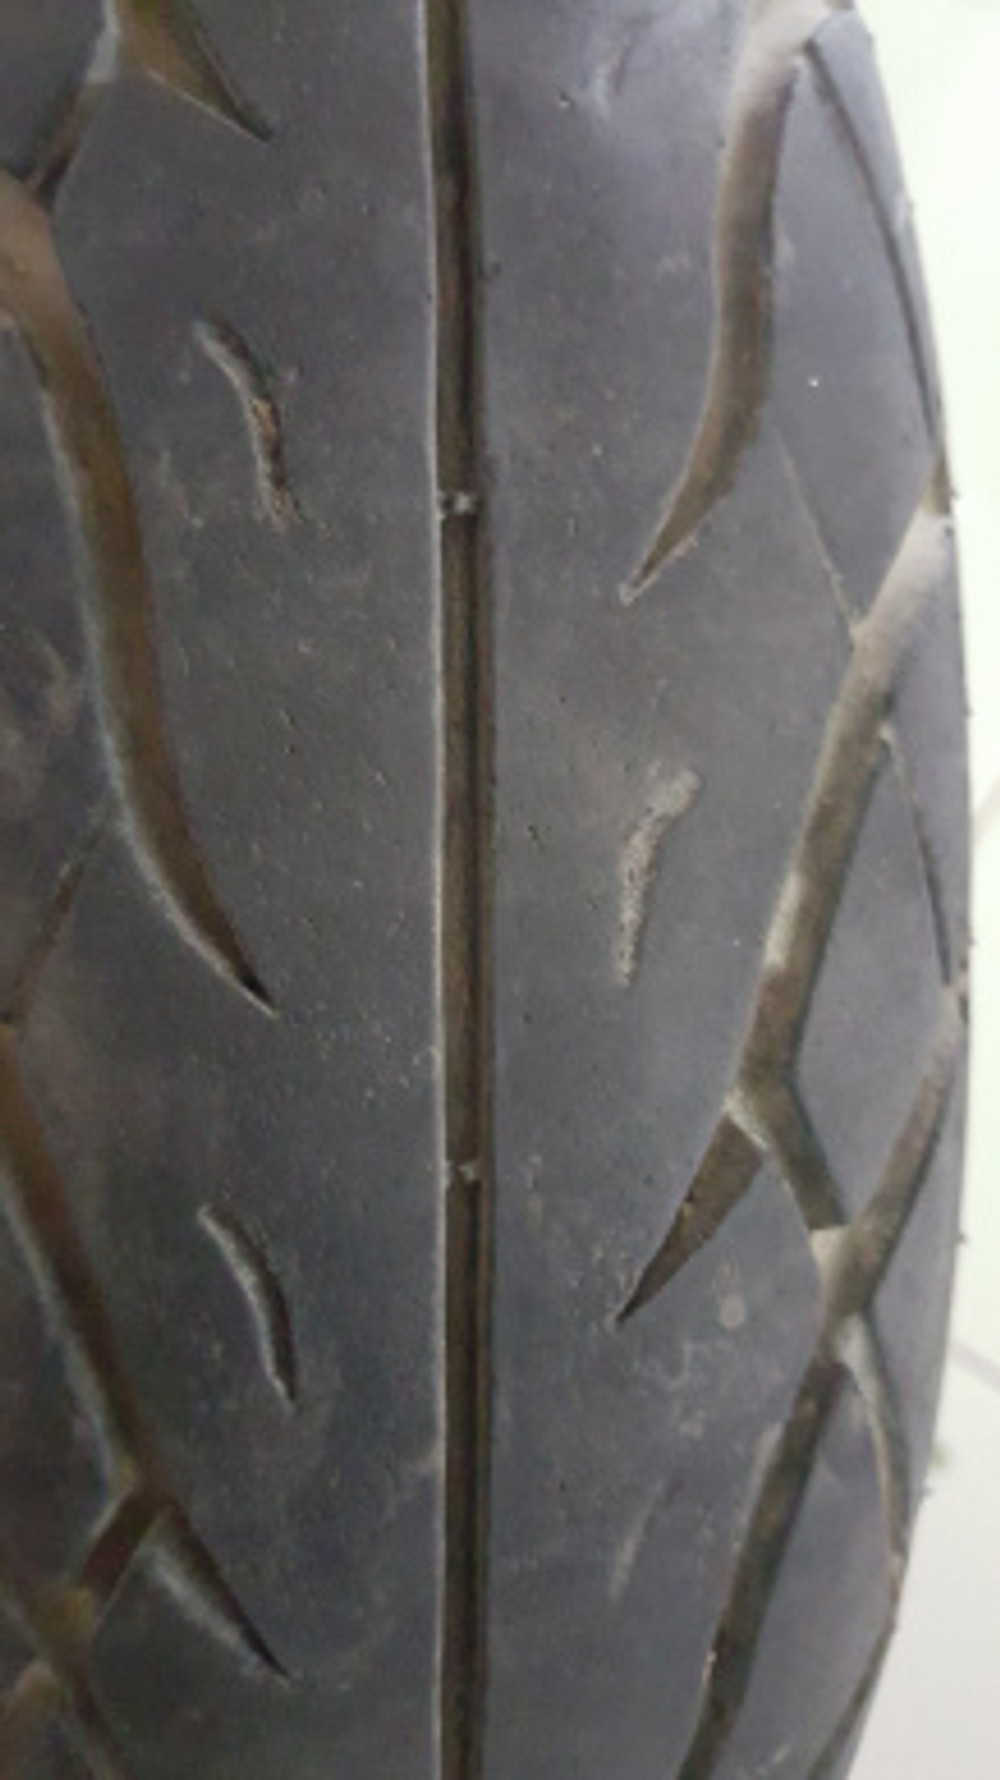 Tampered Tire